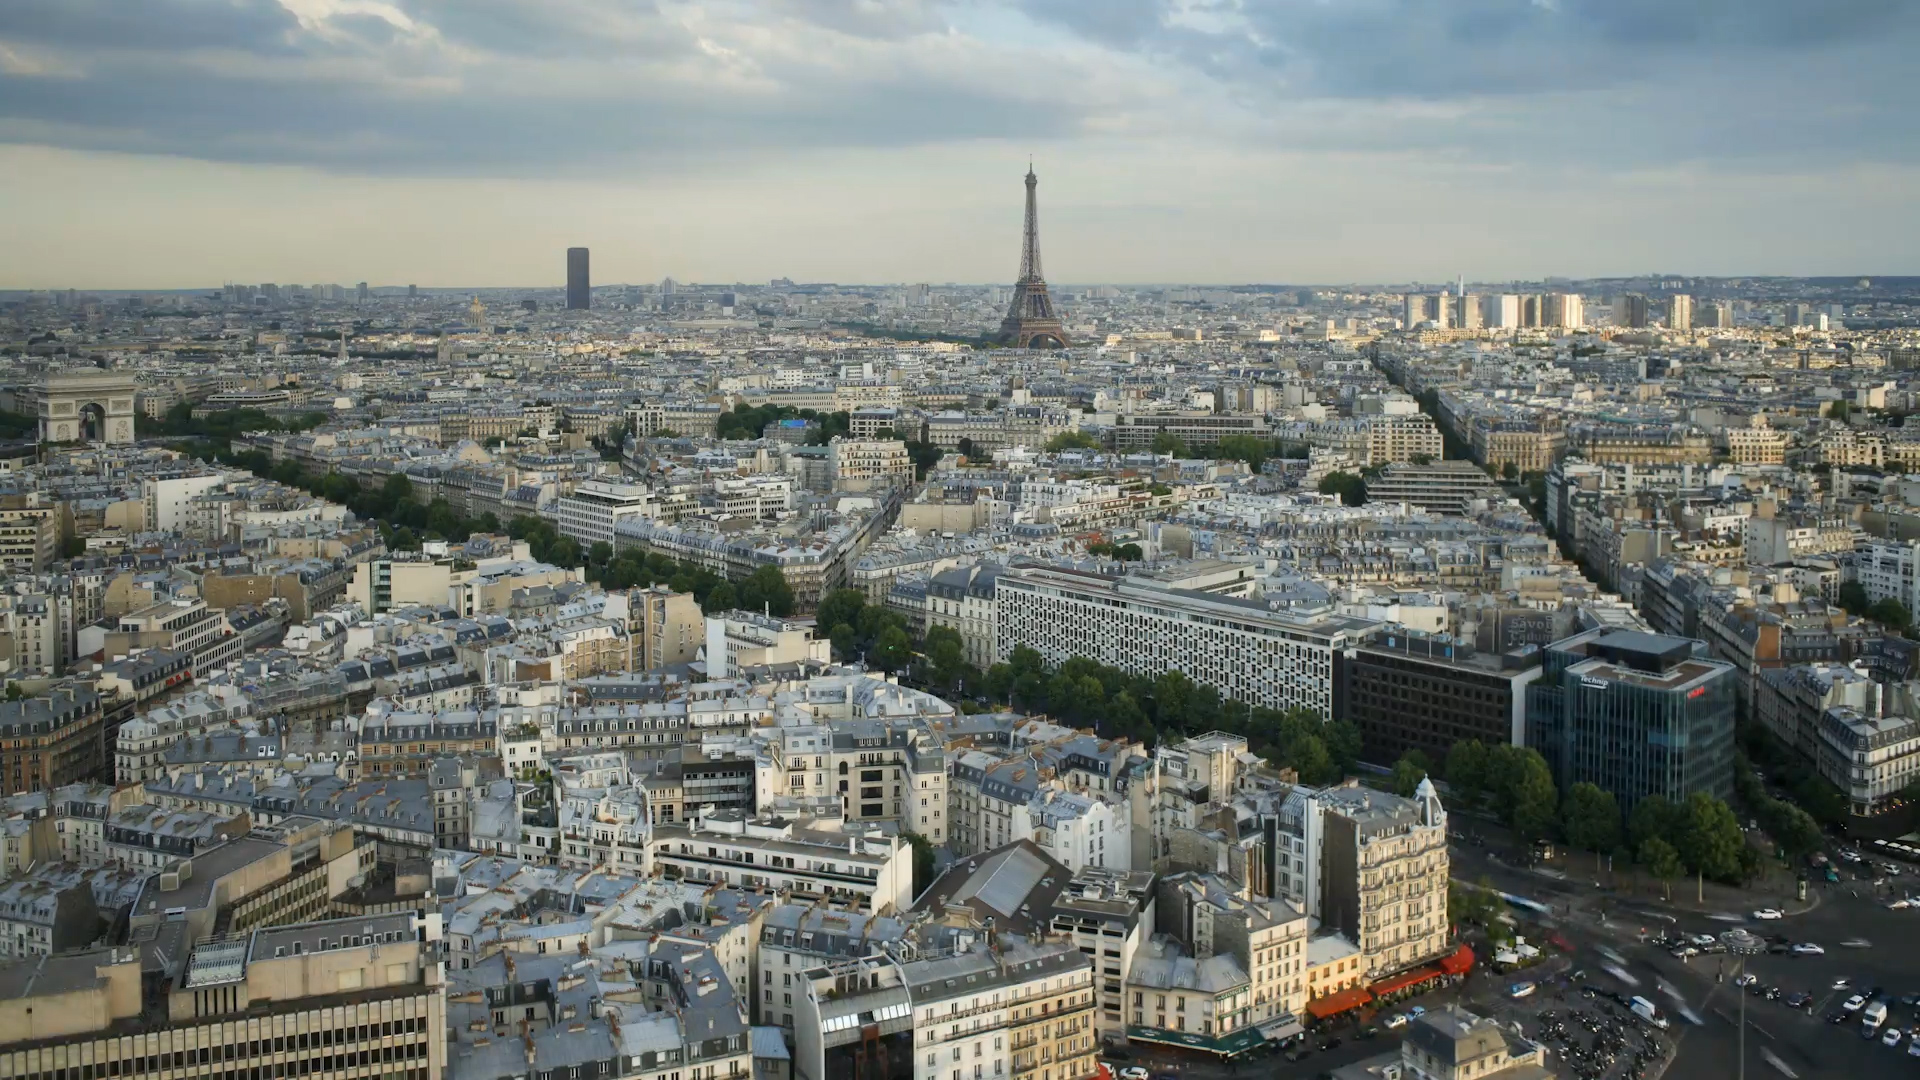 View of Paris' streets, buildings and the Eiffel Tower from up high.